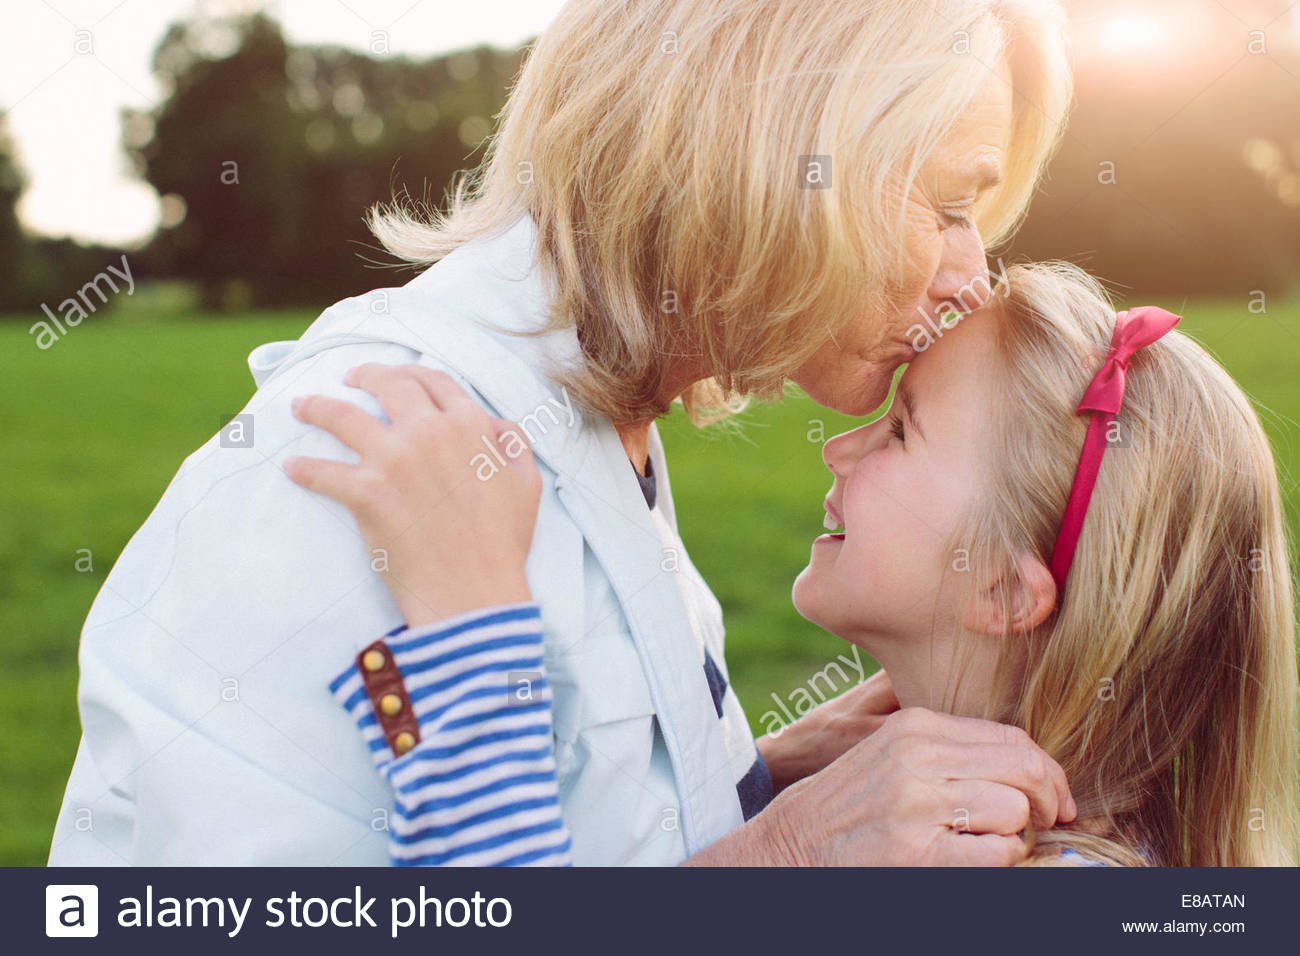 Grandmother kissing granddaughter on forehead - Stock Image